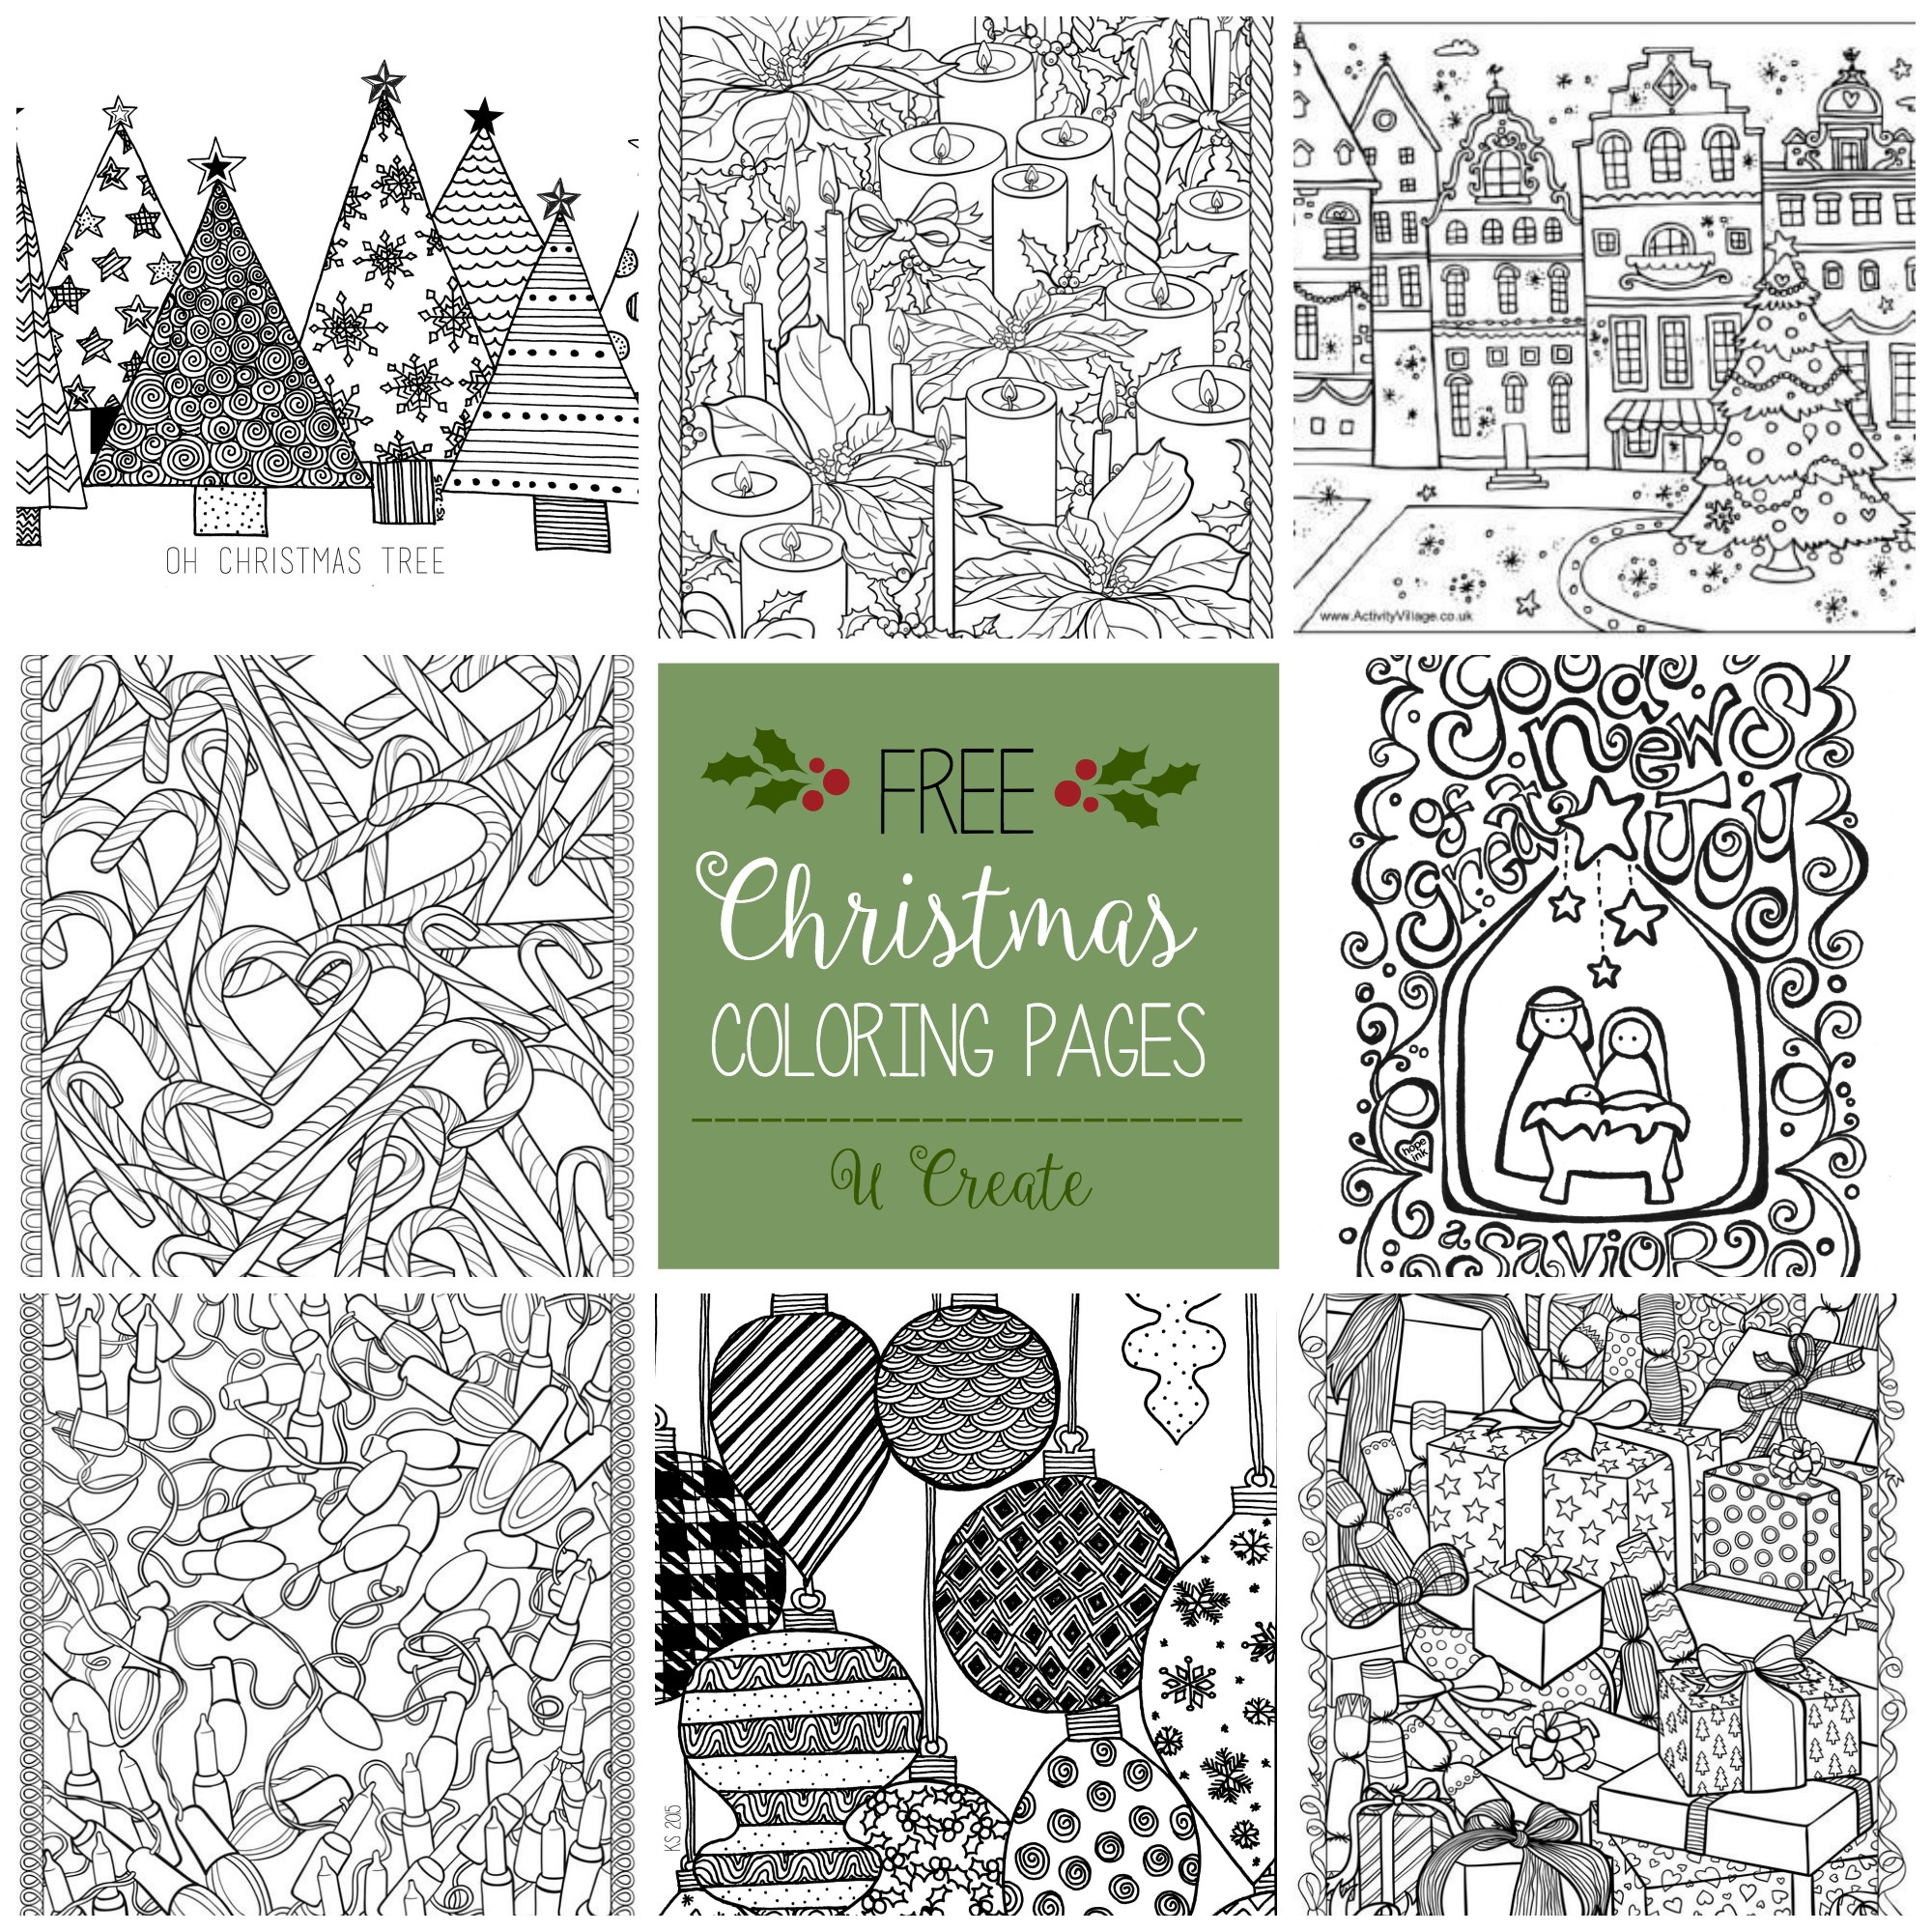 photo about Free Printable Adult Christmas Coloring Pages referred to as No cost Xmas Grownup Coloring Internet pages - U Develop